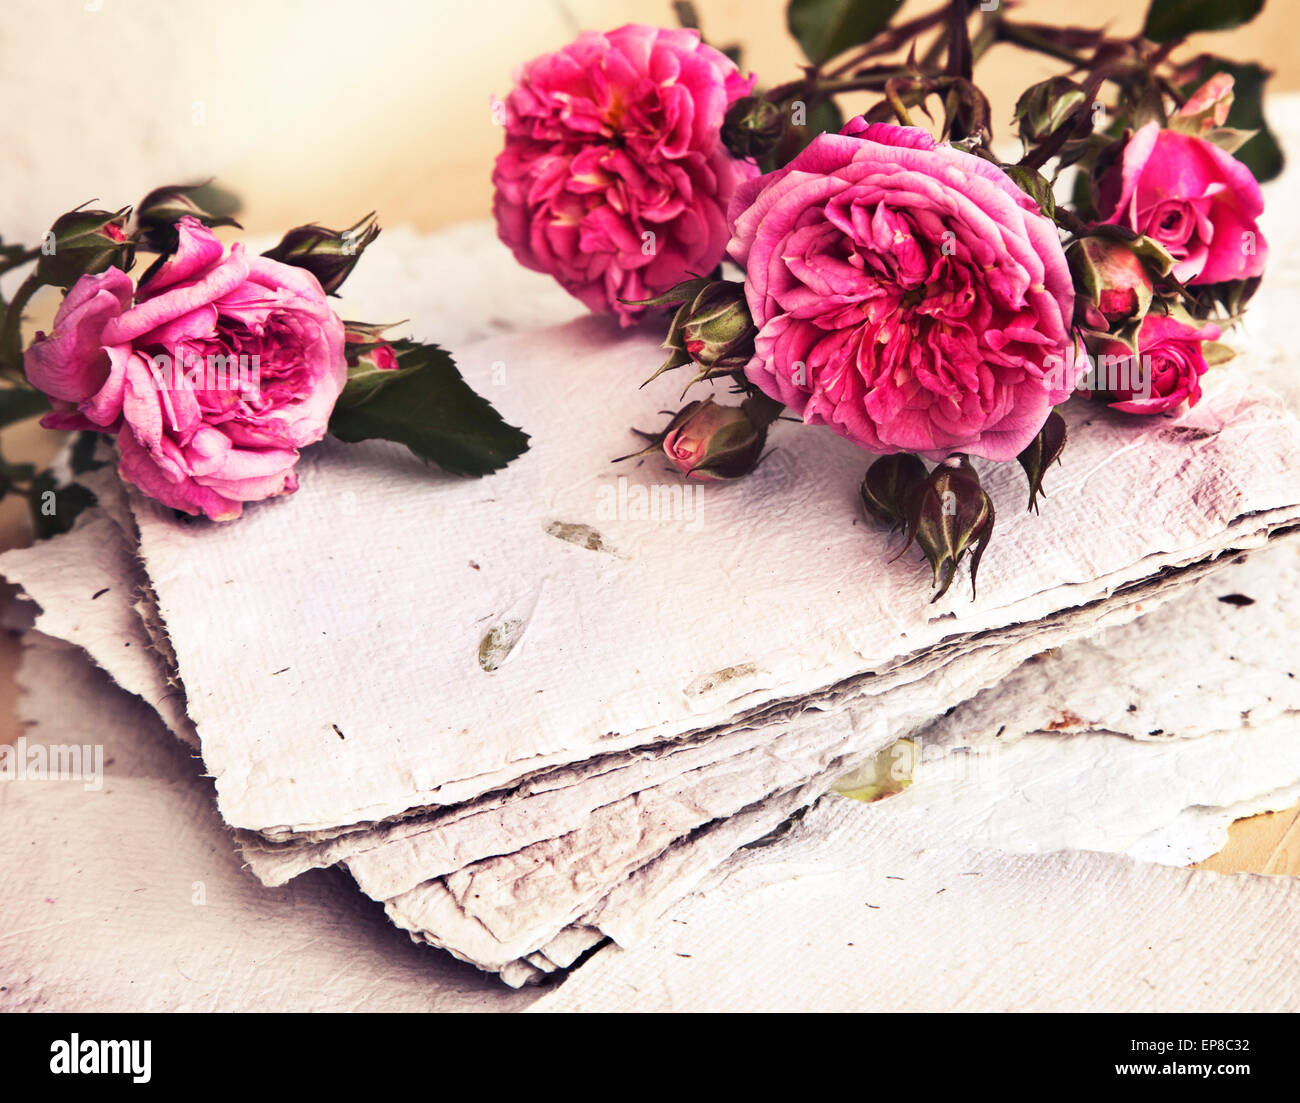 Beautiful Romantic Background With Pink Roses Petals And Handmade